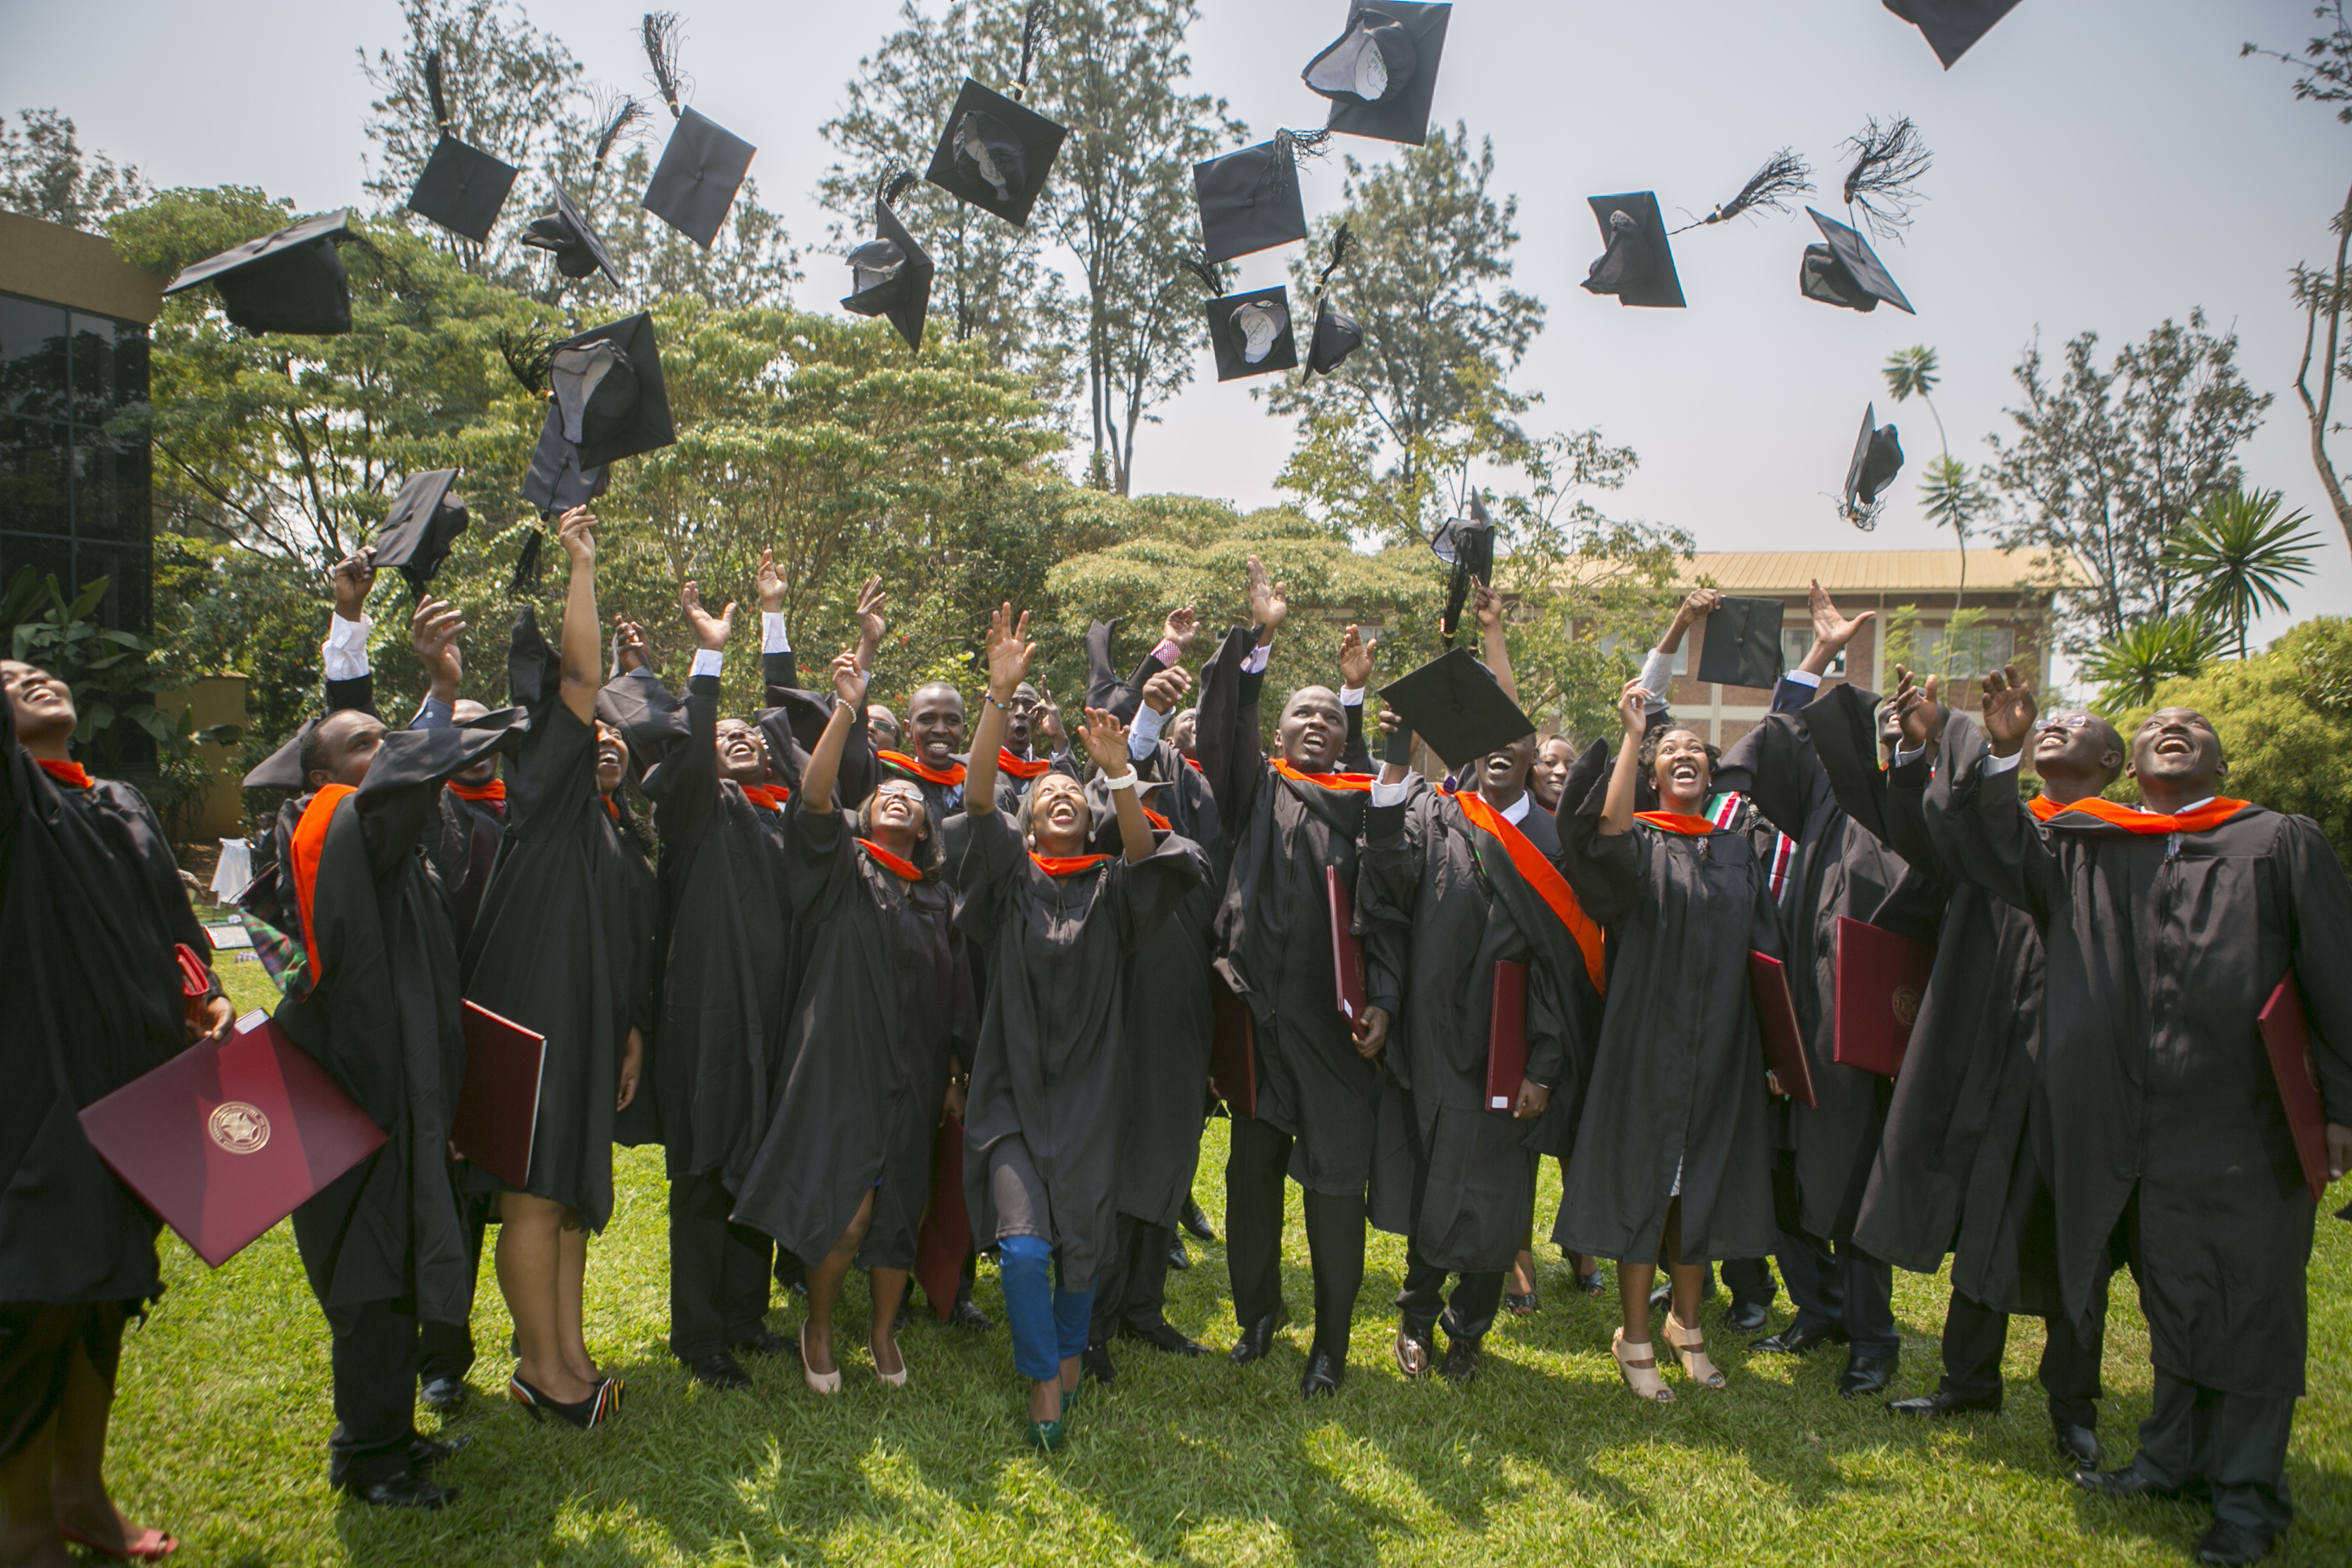 New master's graduates toss their caps in the air at the inaugural graduation ceremony for Carnegie Mellon's Rwanda campus. 22 students received degrees in information technology on July 24. (credit: Courtesy of Philippe Nyirimihigo)